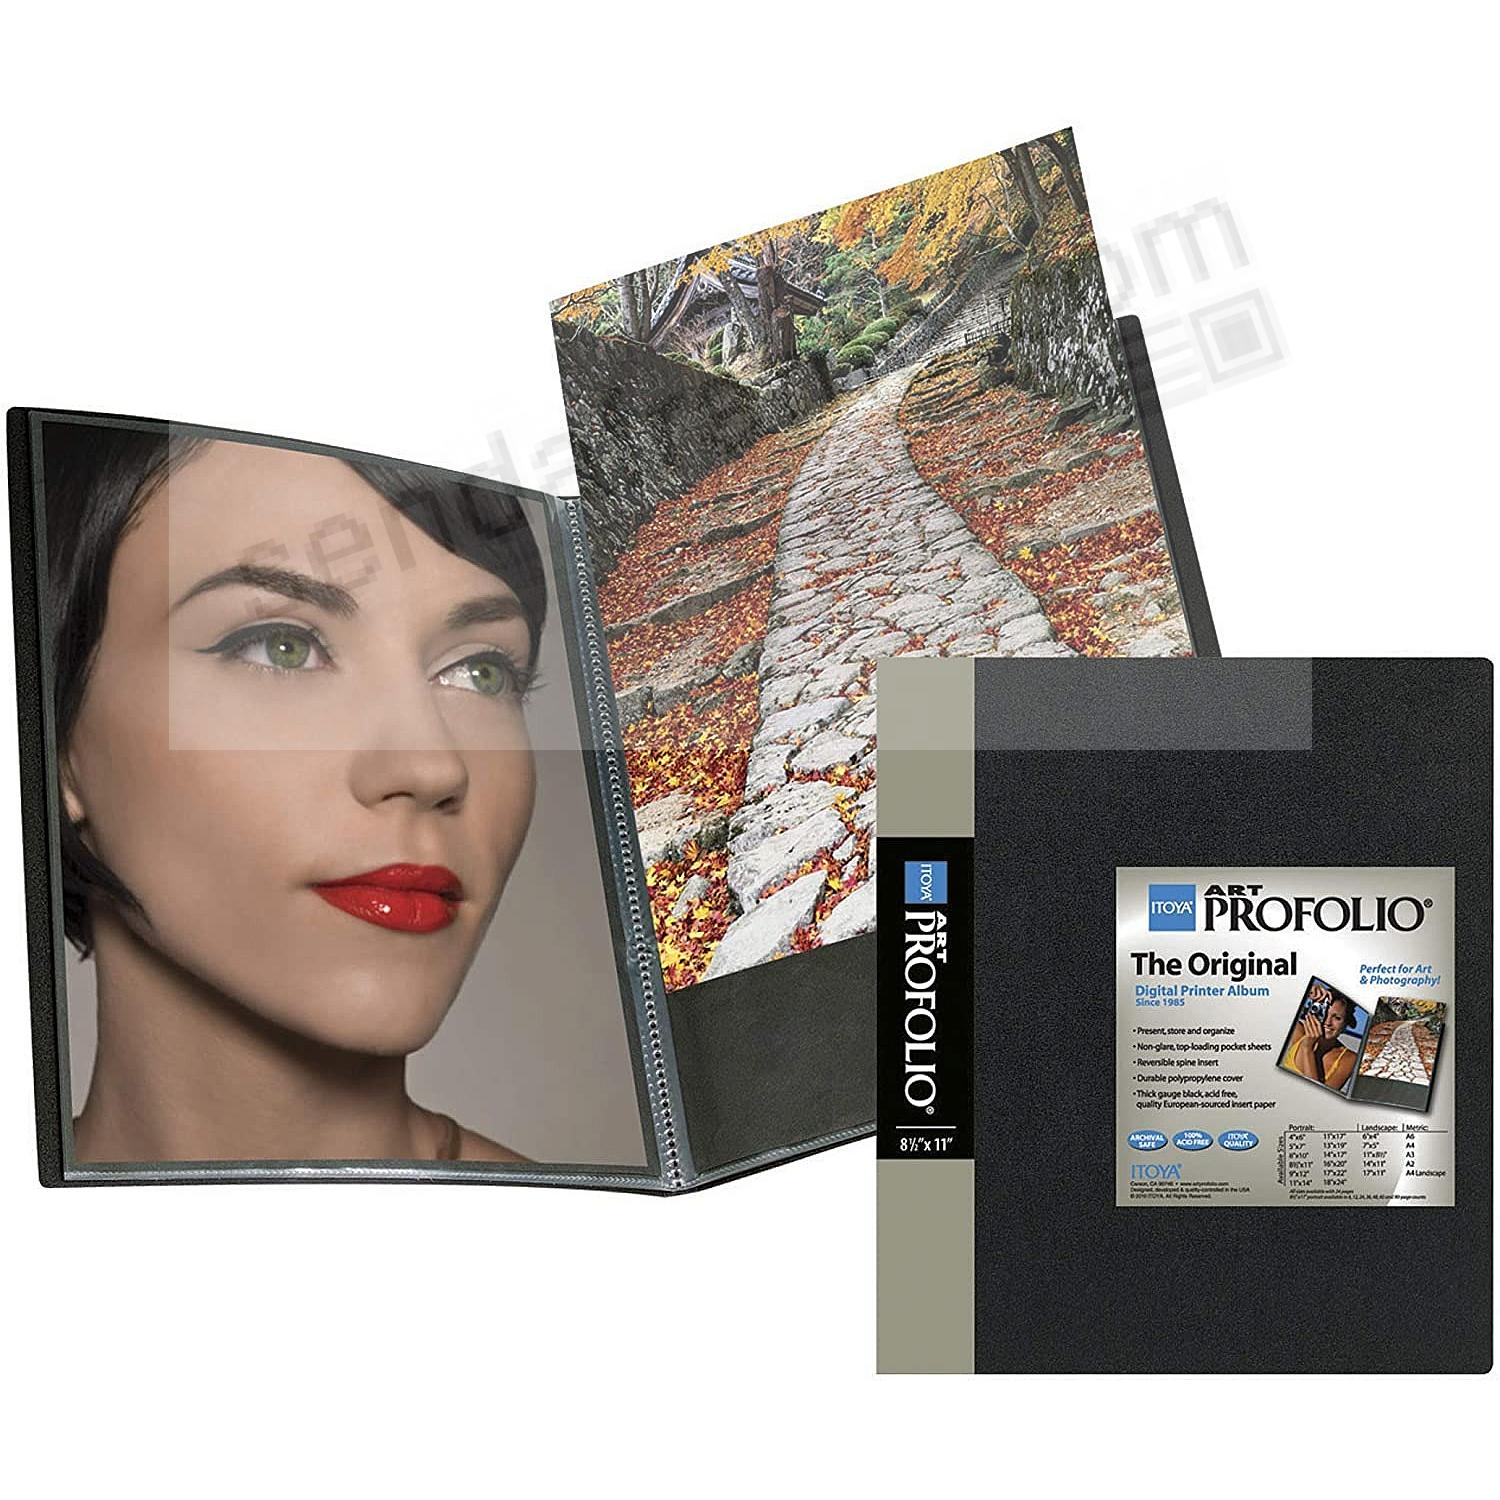 The Original PROFOLIO CLASSIC 8½x11 Art + Photo Album for 48 prints/24 pages by Itoya®